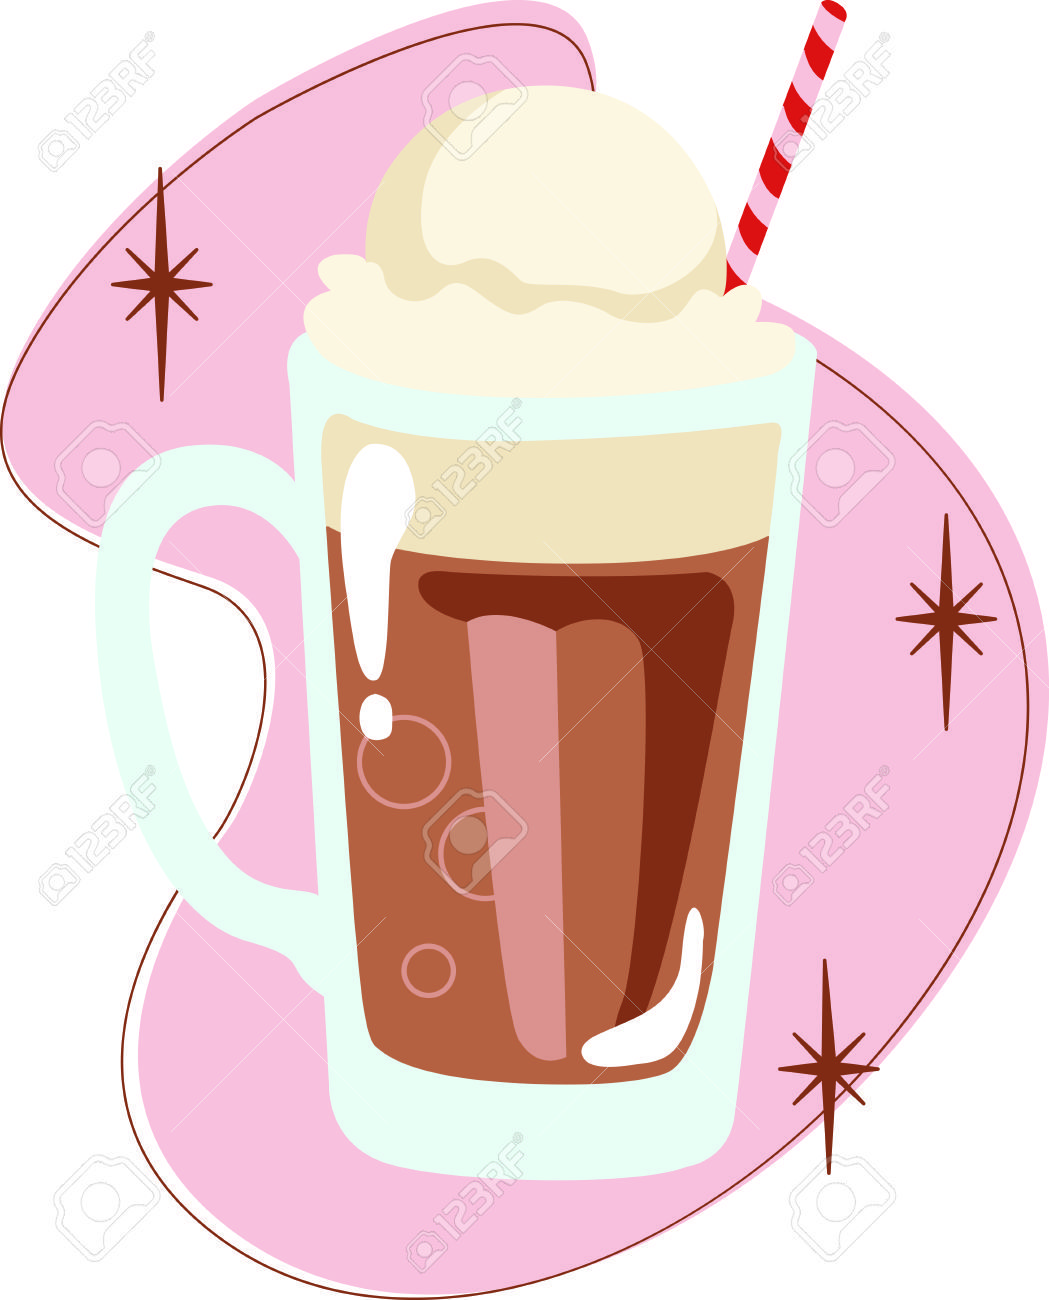 Ice cream float root beer float clipart graphic library download Pin by Aaron Swenson on THE EDIBLE COMPLEX | Soda floats ... graphic library download